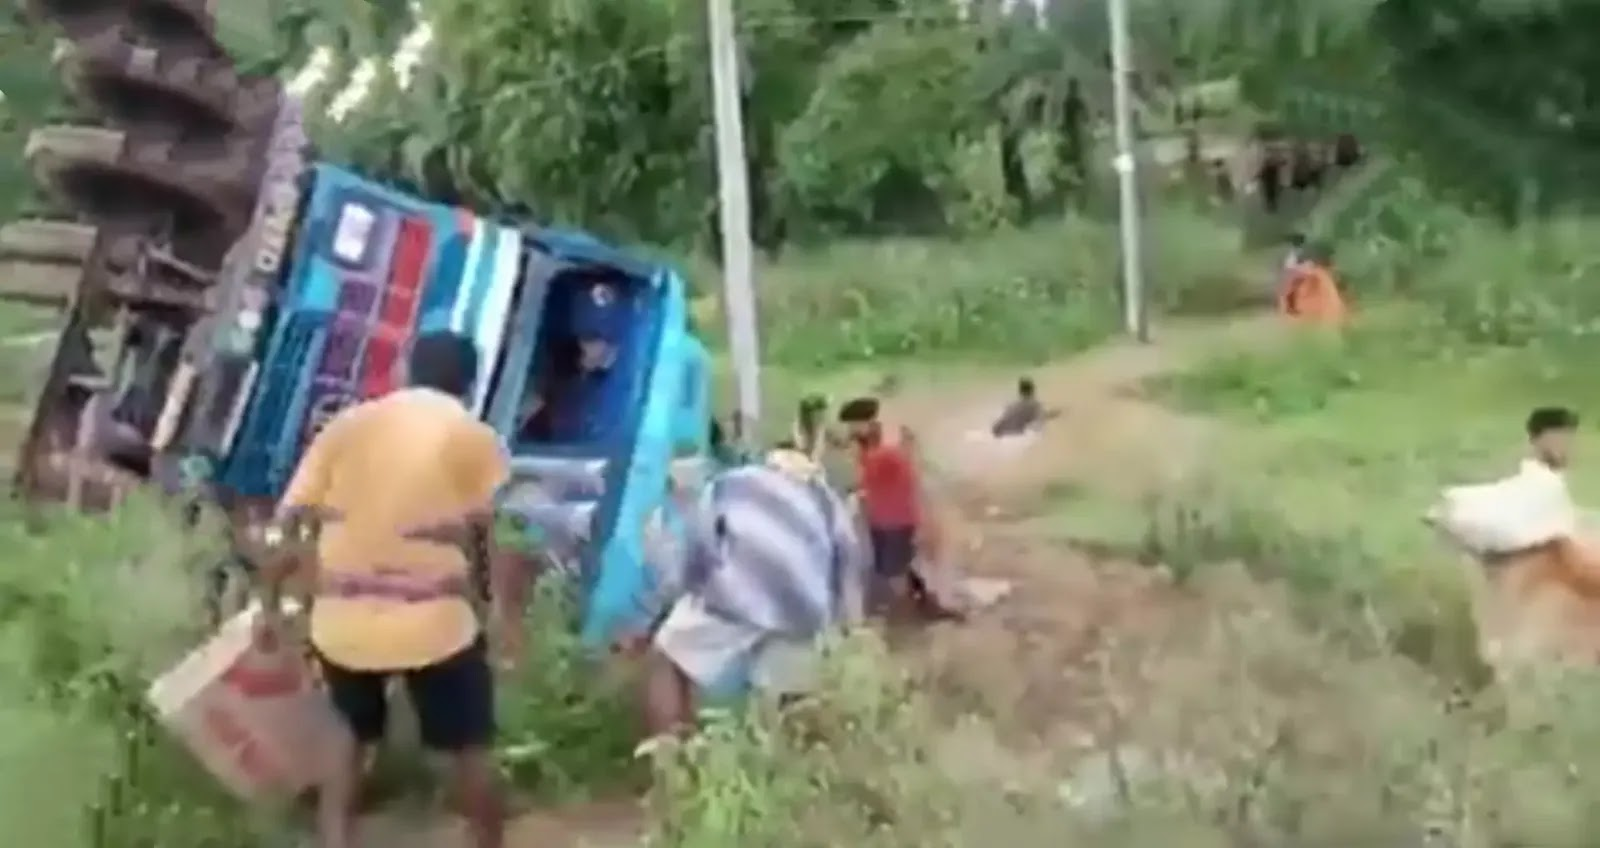 Local-lock-started-taking-groceries-from-the-overturned-truck